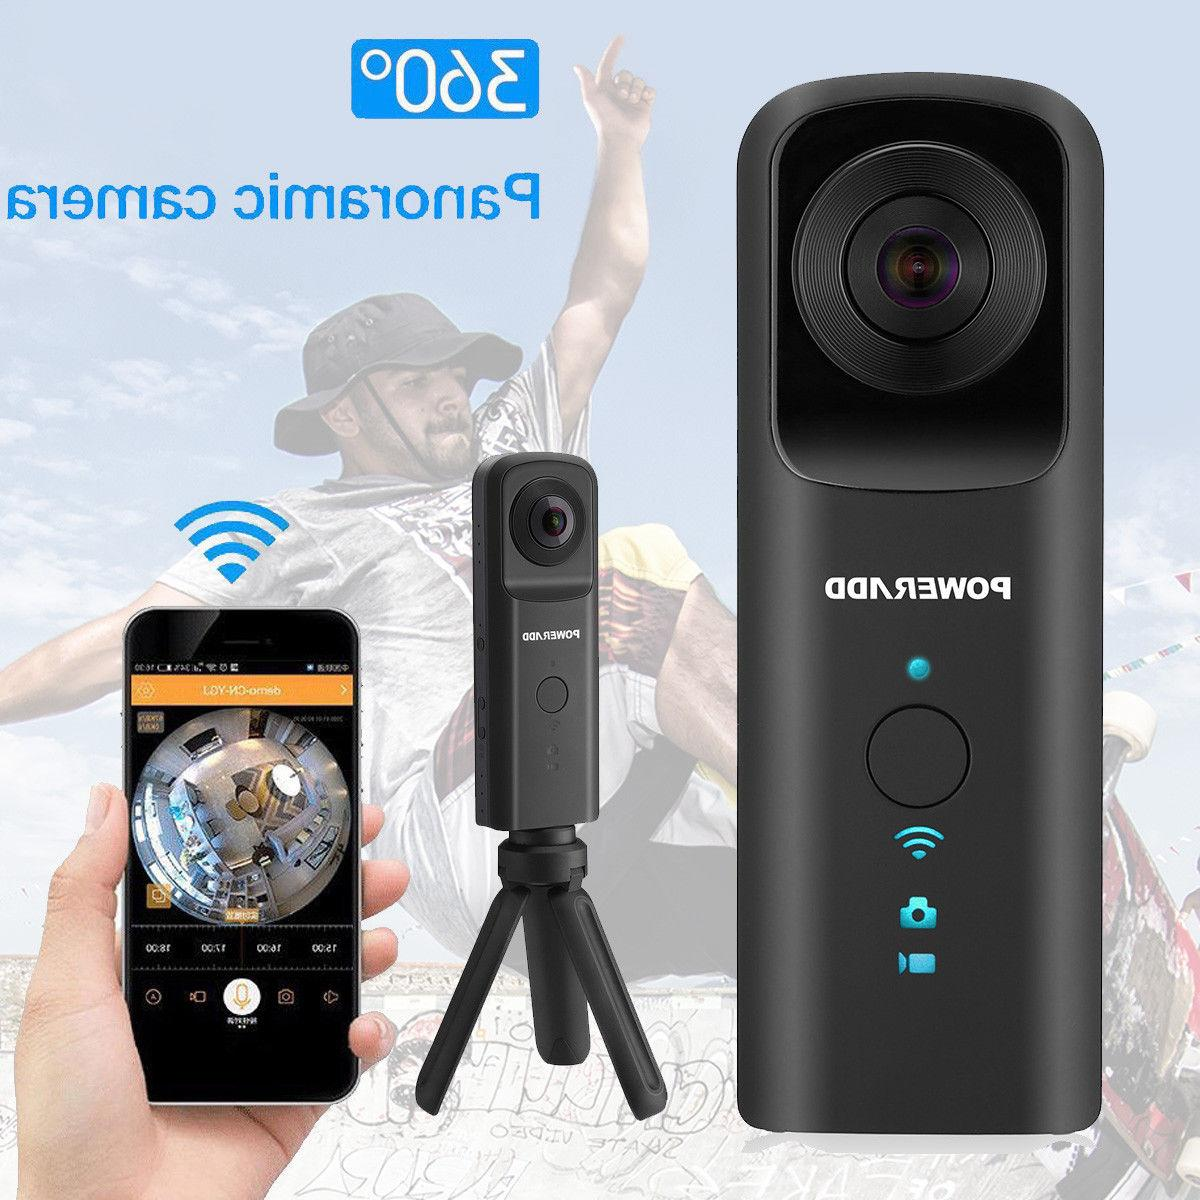 360 VR Camera Handheld Video Panoramic Camera WiFi HD Wide A